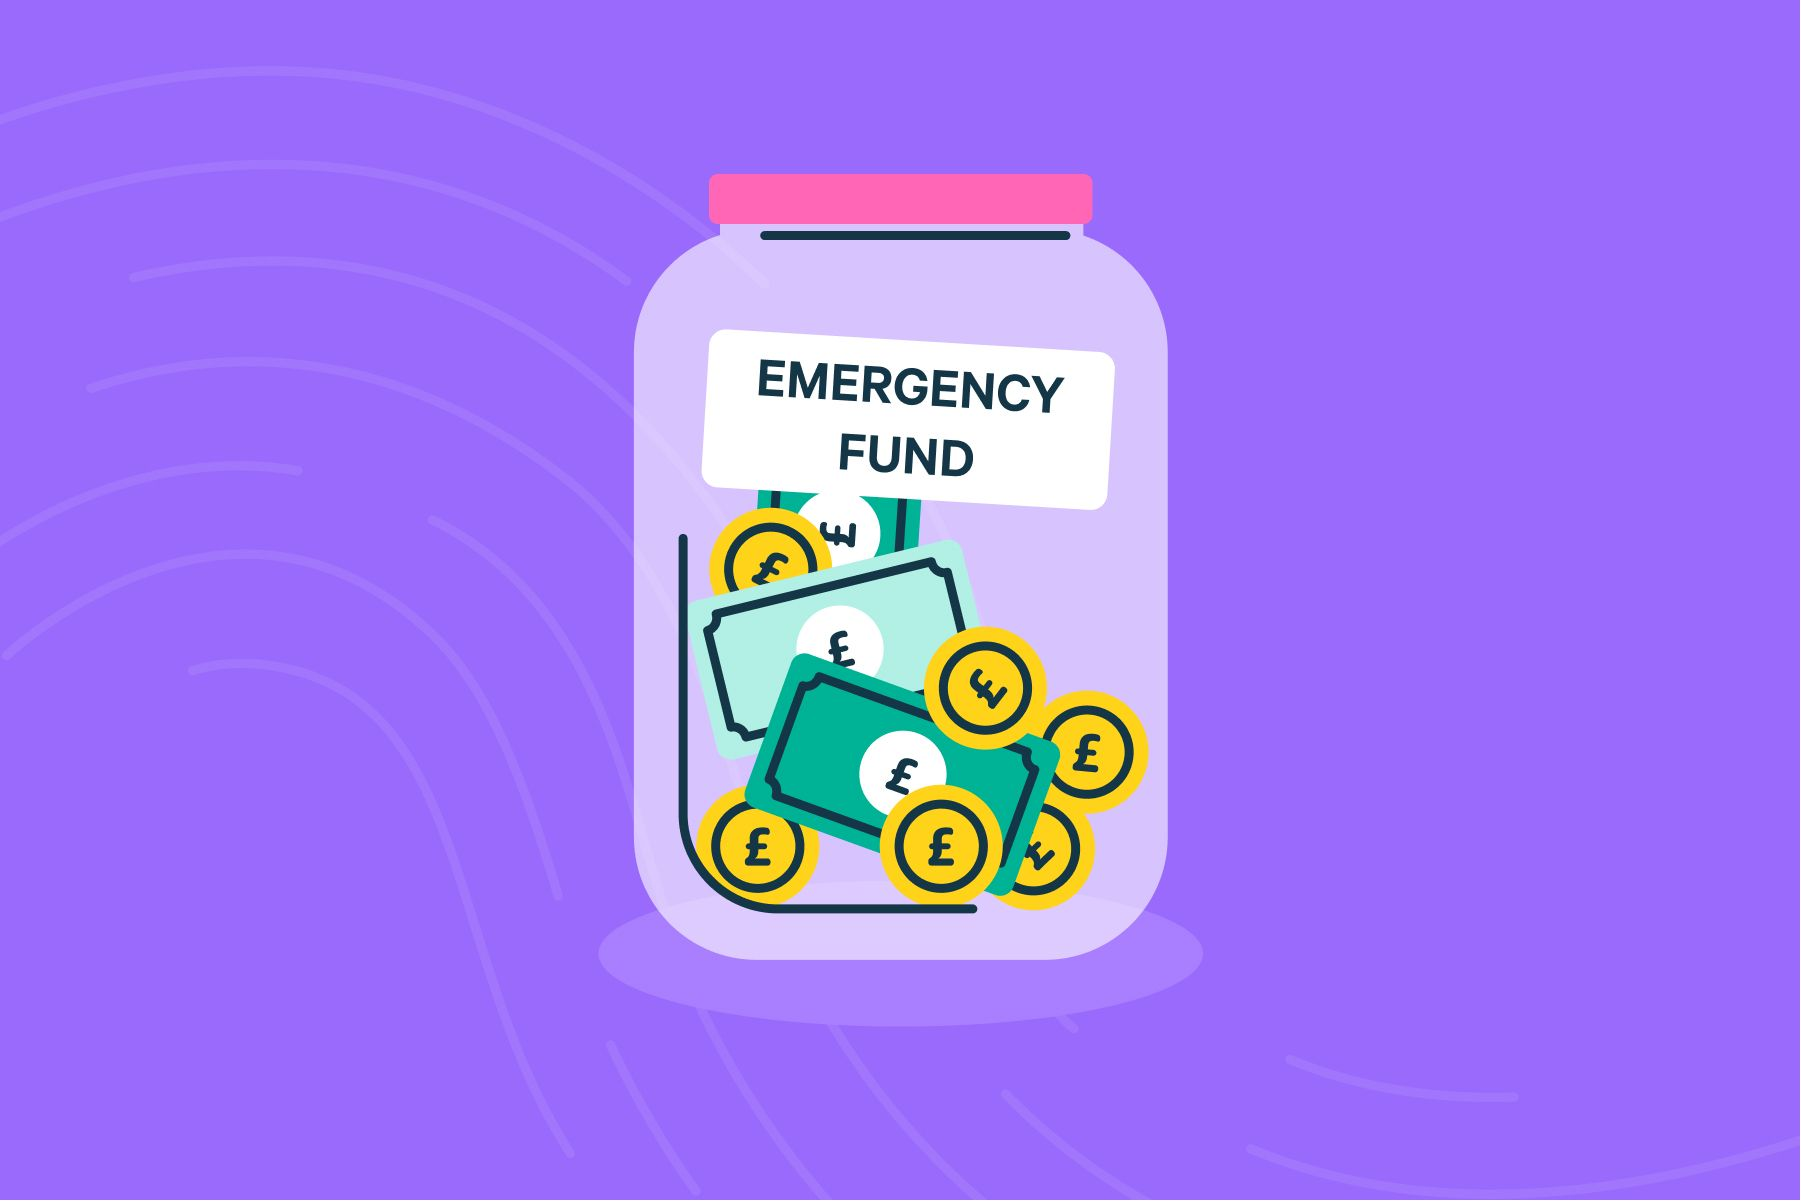 What's an Emergency Fund, why are they important and how much money should you have saved? 💰